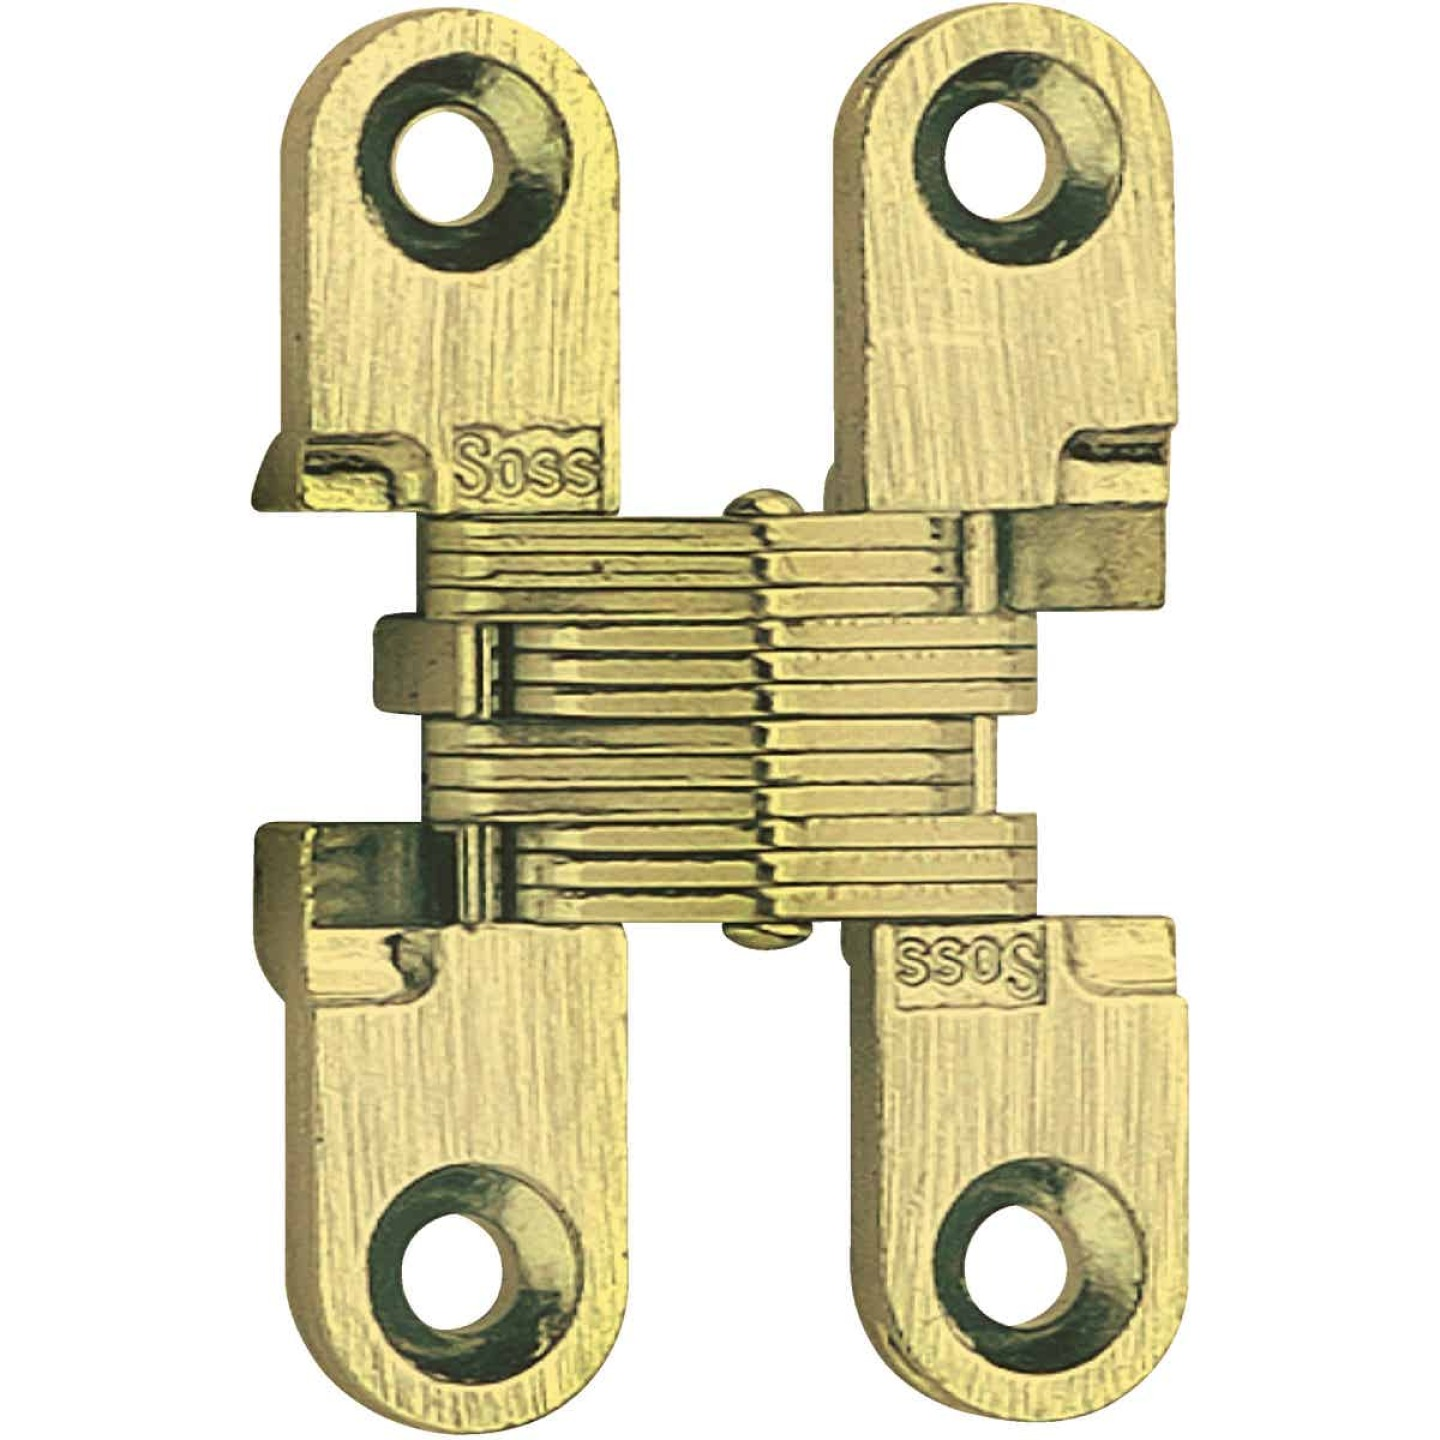 SOSS Satin Brass 3/8 In. x 1 In. Invisible Hinge, (2-Pack) Image 1